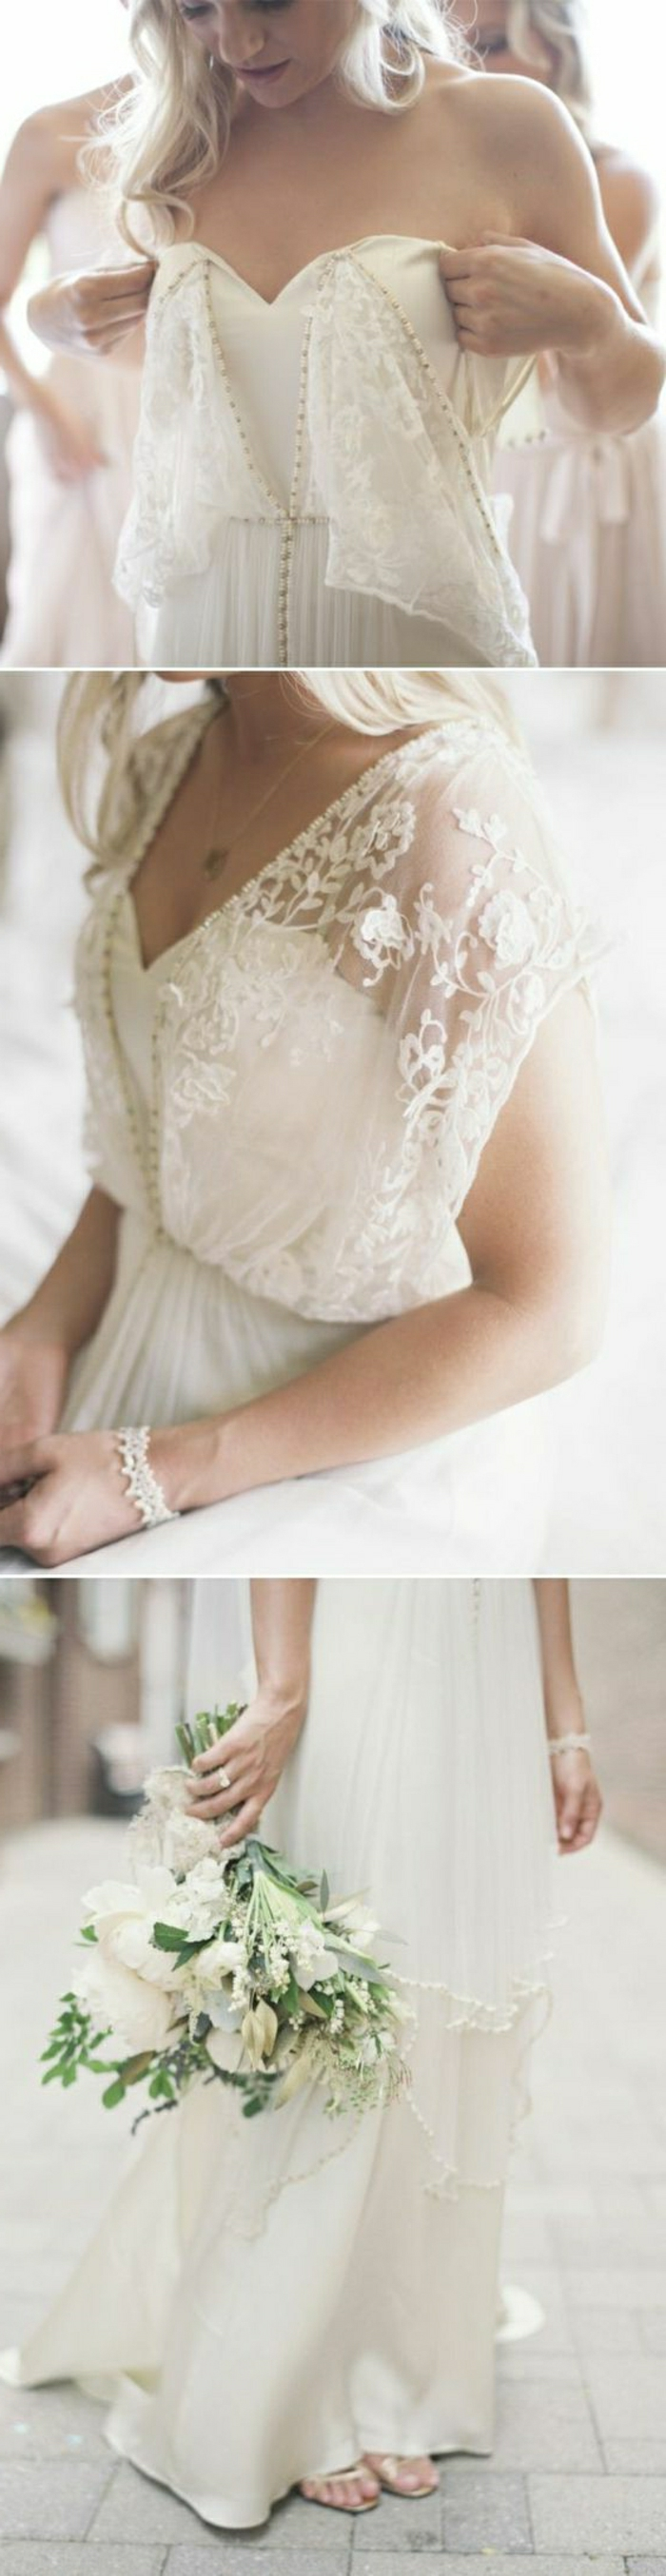 three close-ups of a wedding dress with lace details, worn by a blonde young bride, with a white bracelet, holding a bouquet of white flowers